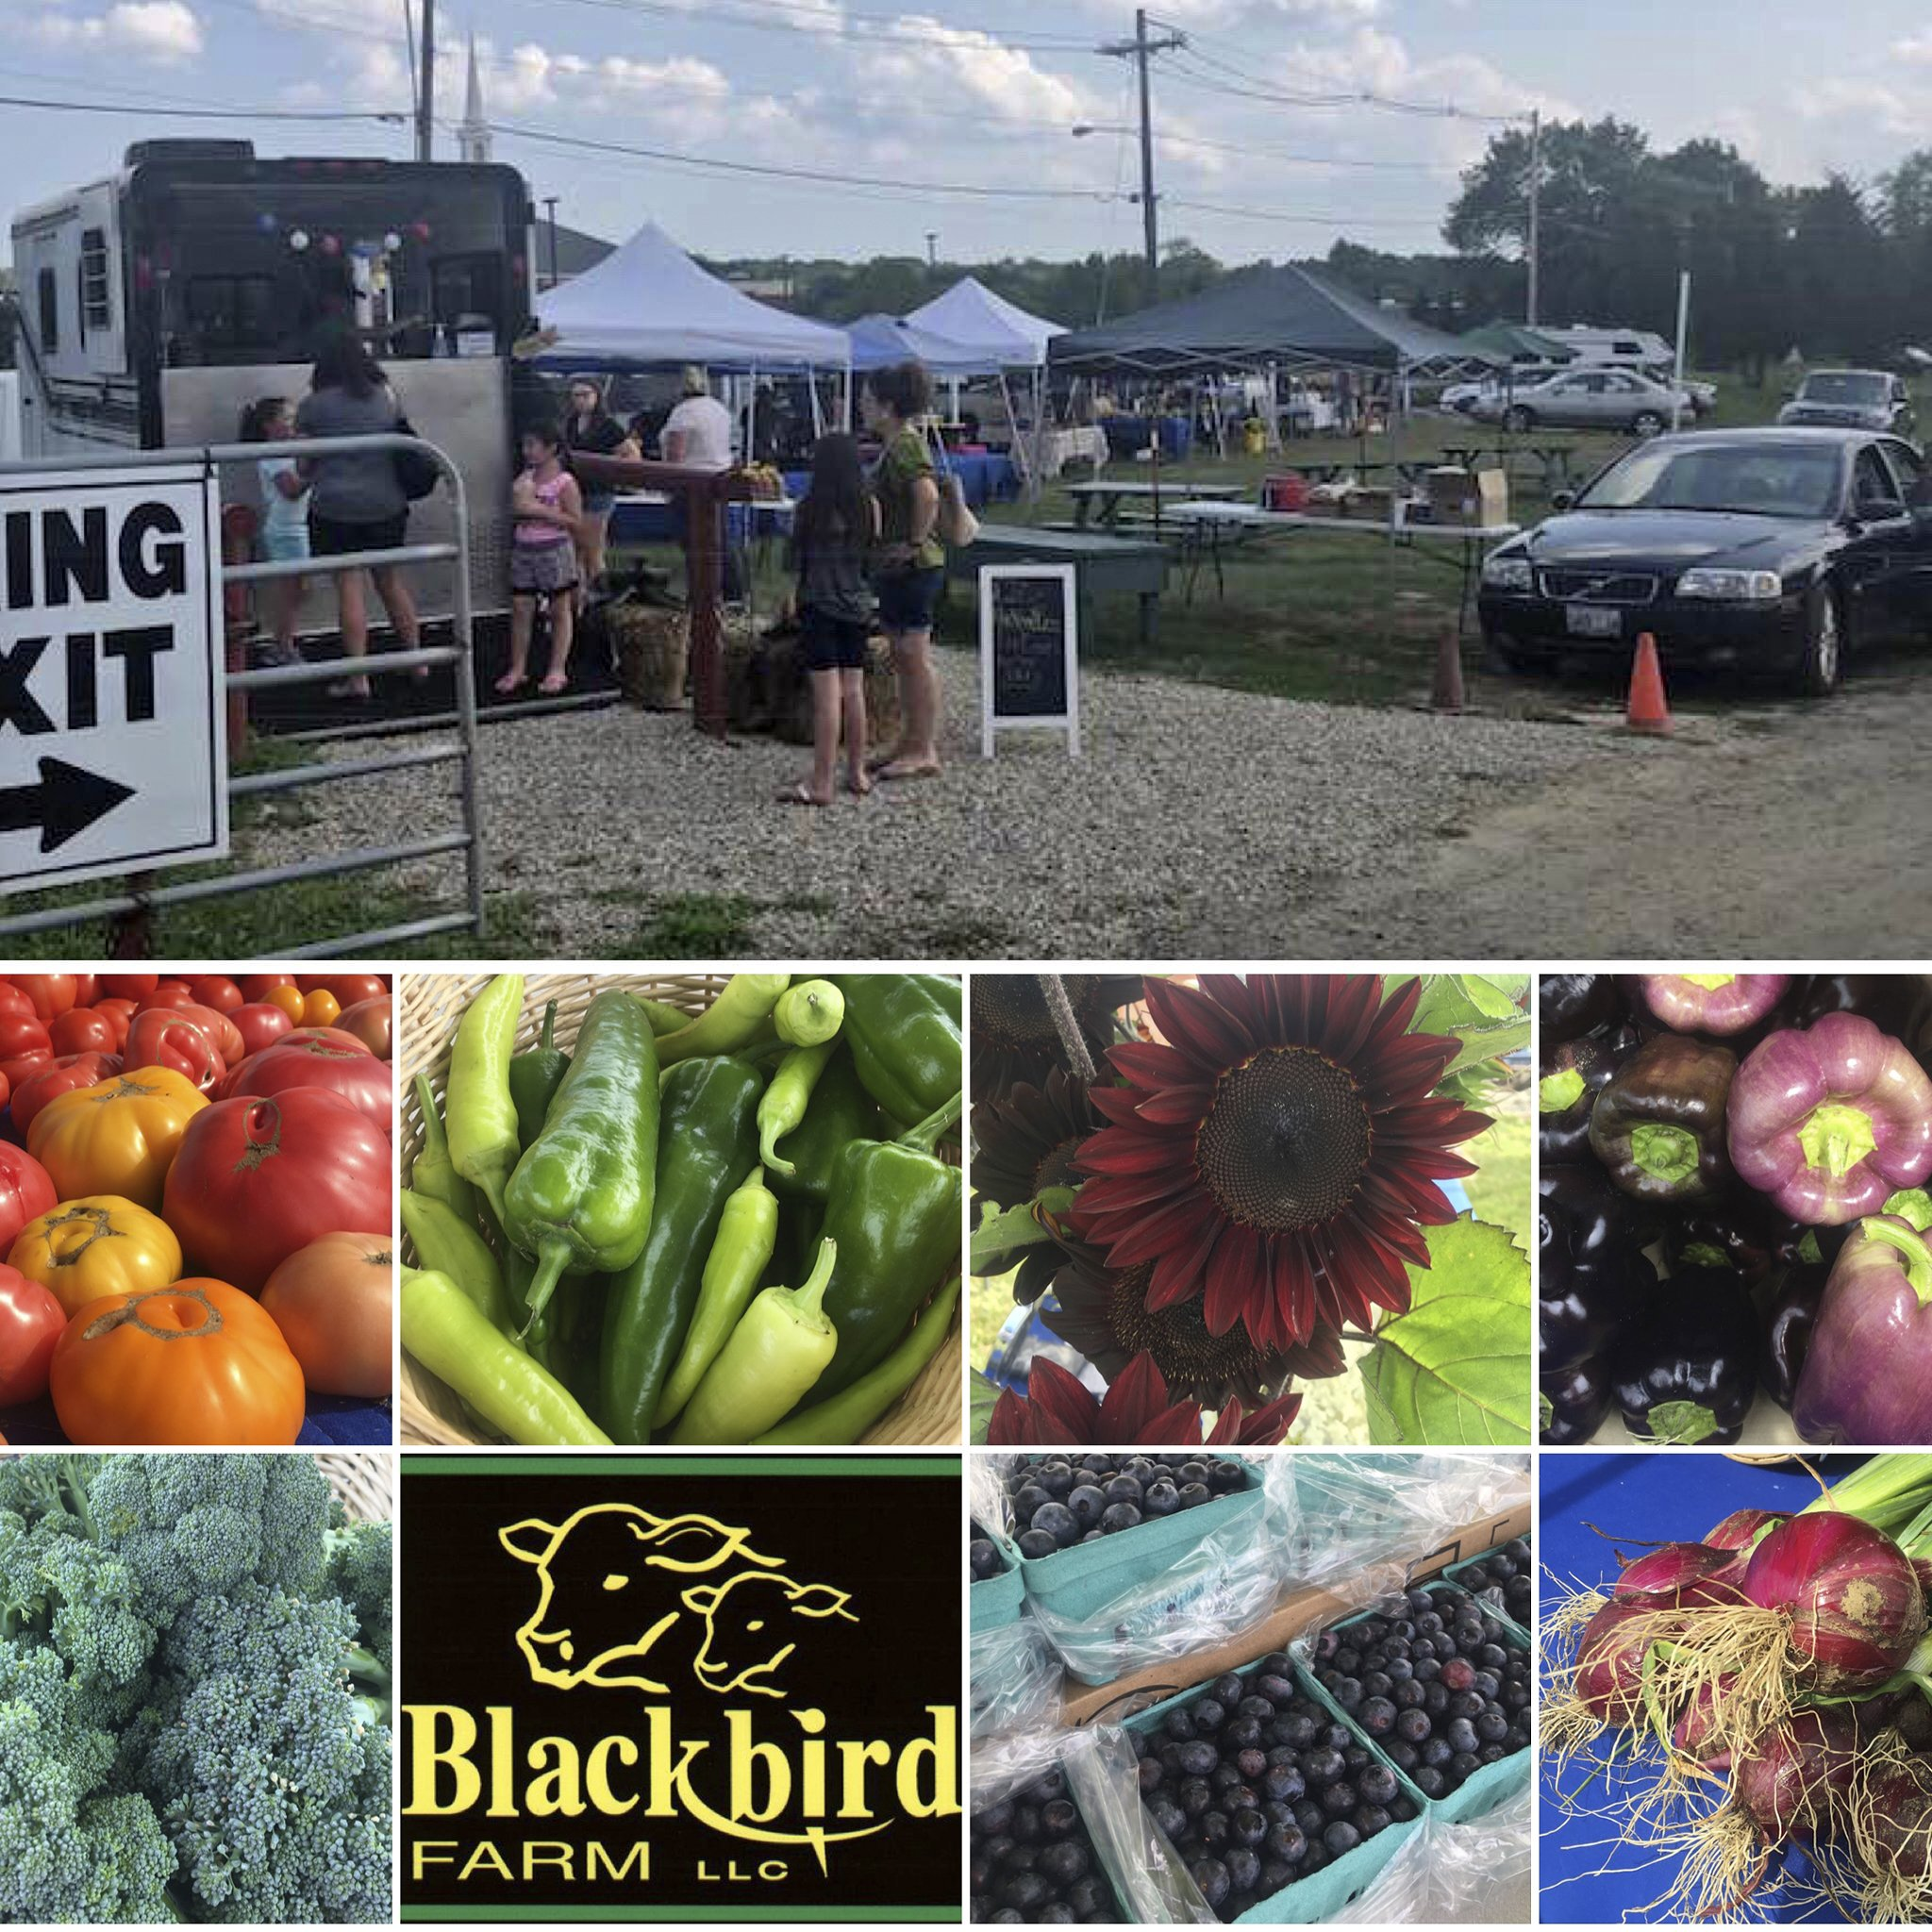 Blackbird Farm Farmers Market